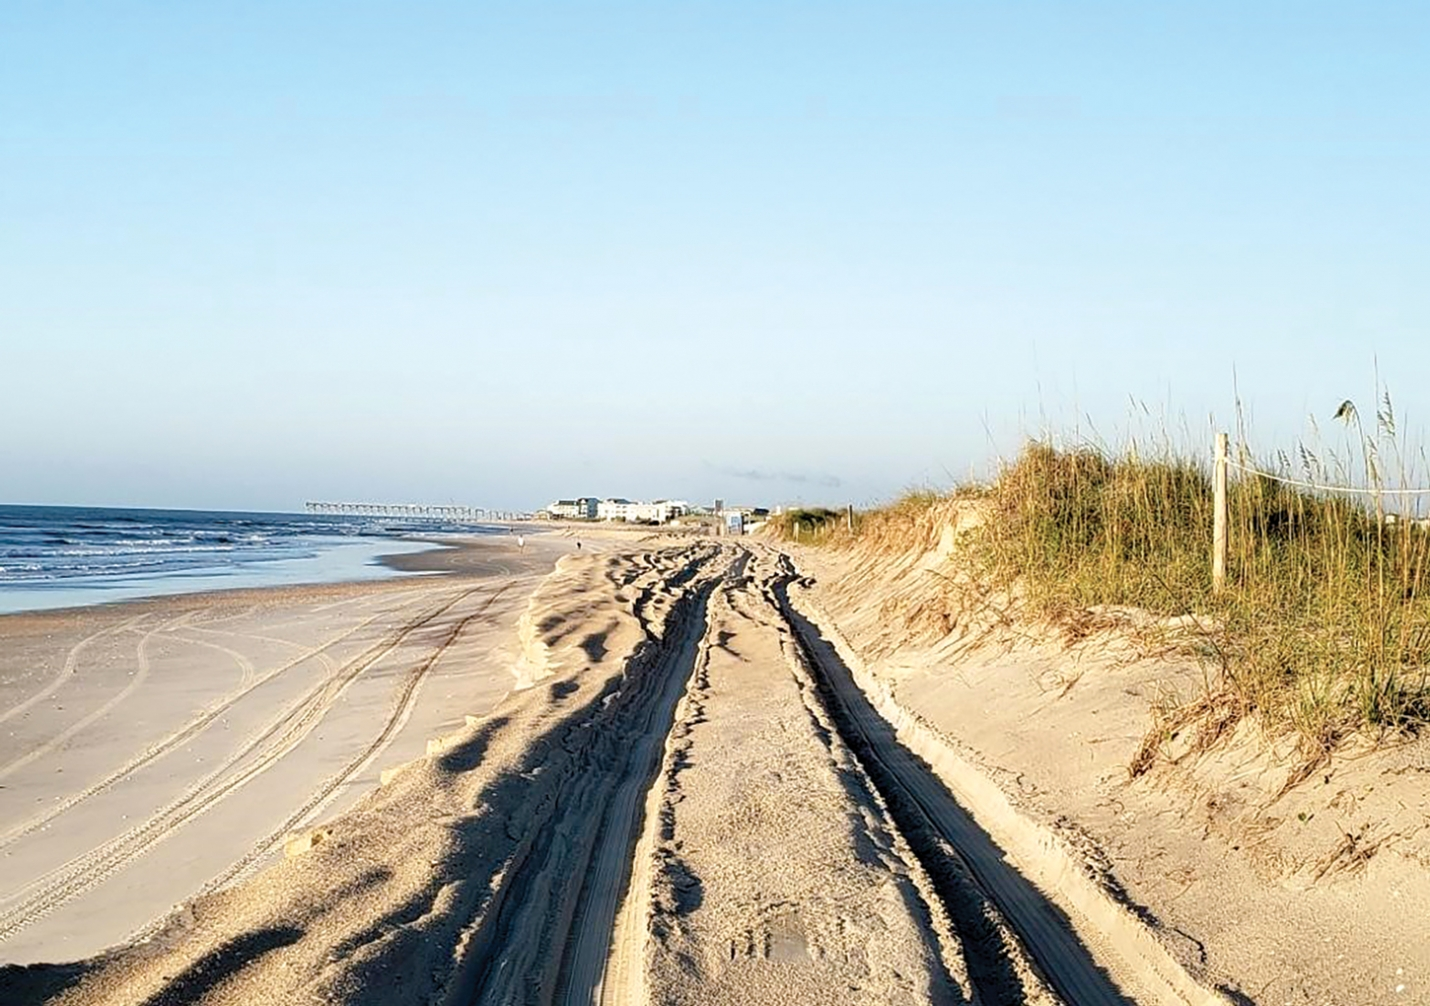 If you are planning to visit Freeman Park on the North End of Carolina Beach over the July 4th, holiday weekend, call ahead first (910-458-2999). The Town is temporarily closing the park at times to prevent overcrowding after beach erosion made nearly half of the park inaccessible for driving and camping.